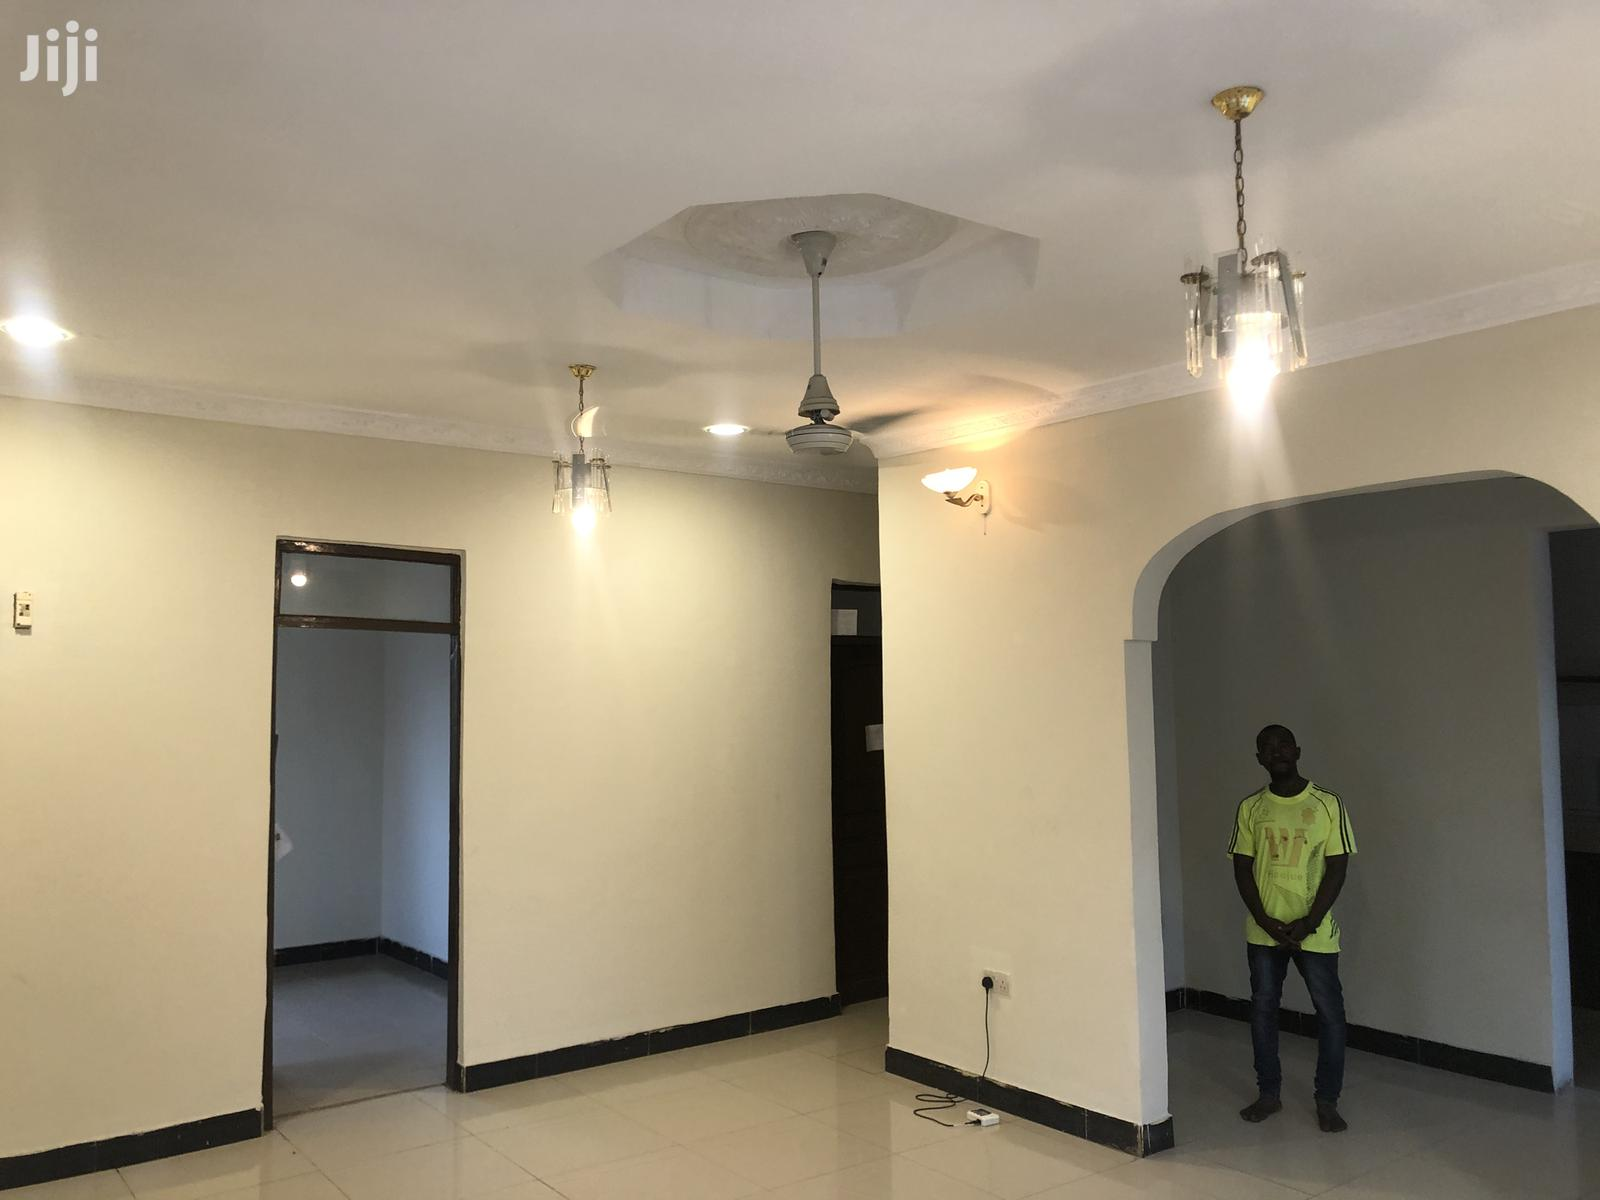 House In Kigamboni For Rent | Houses & Apartments For Rent for sale in Ilala, Dar es Salaam, Tanzania